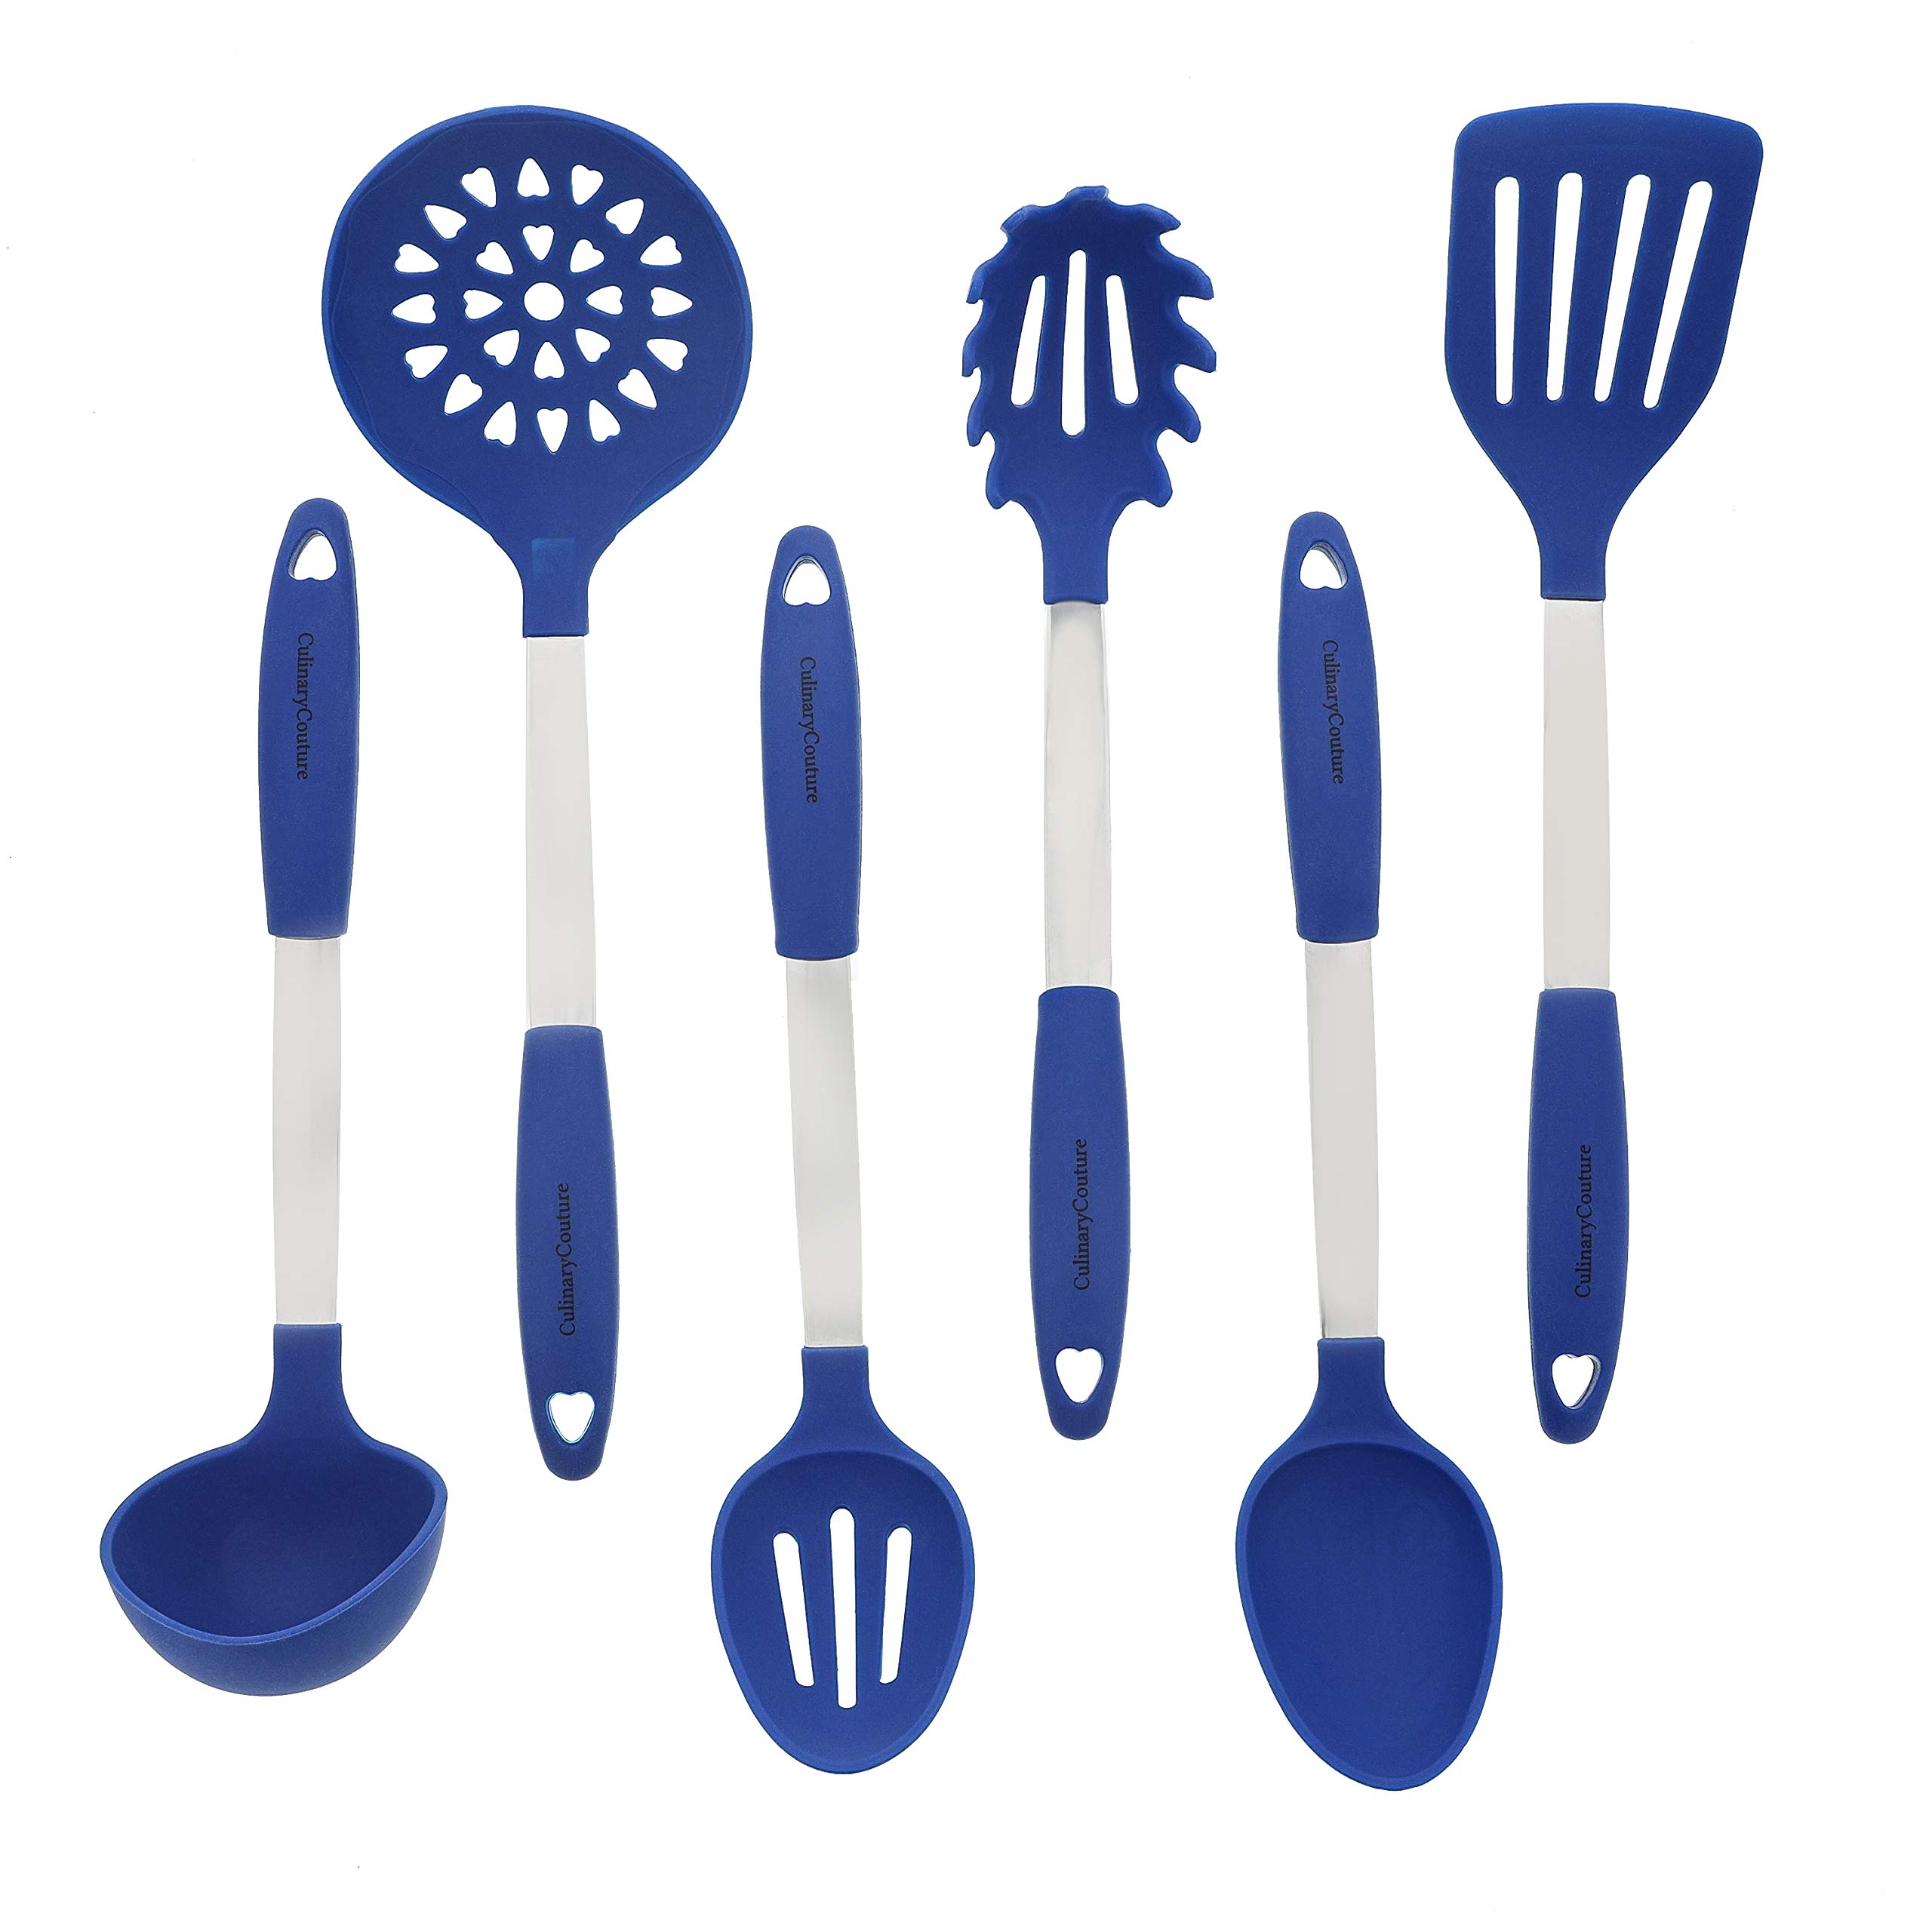 Blue Kitchen Utensil Set - Stainless Steel & Silicone Heat Resistant Professional Cooking Tools - Spatula, Mixing & Slotted Spoon, Ladle, Pasta Fork Server, Drainer - Bonus Ebook! by Culinary Couture